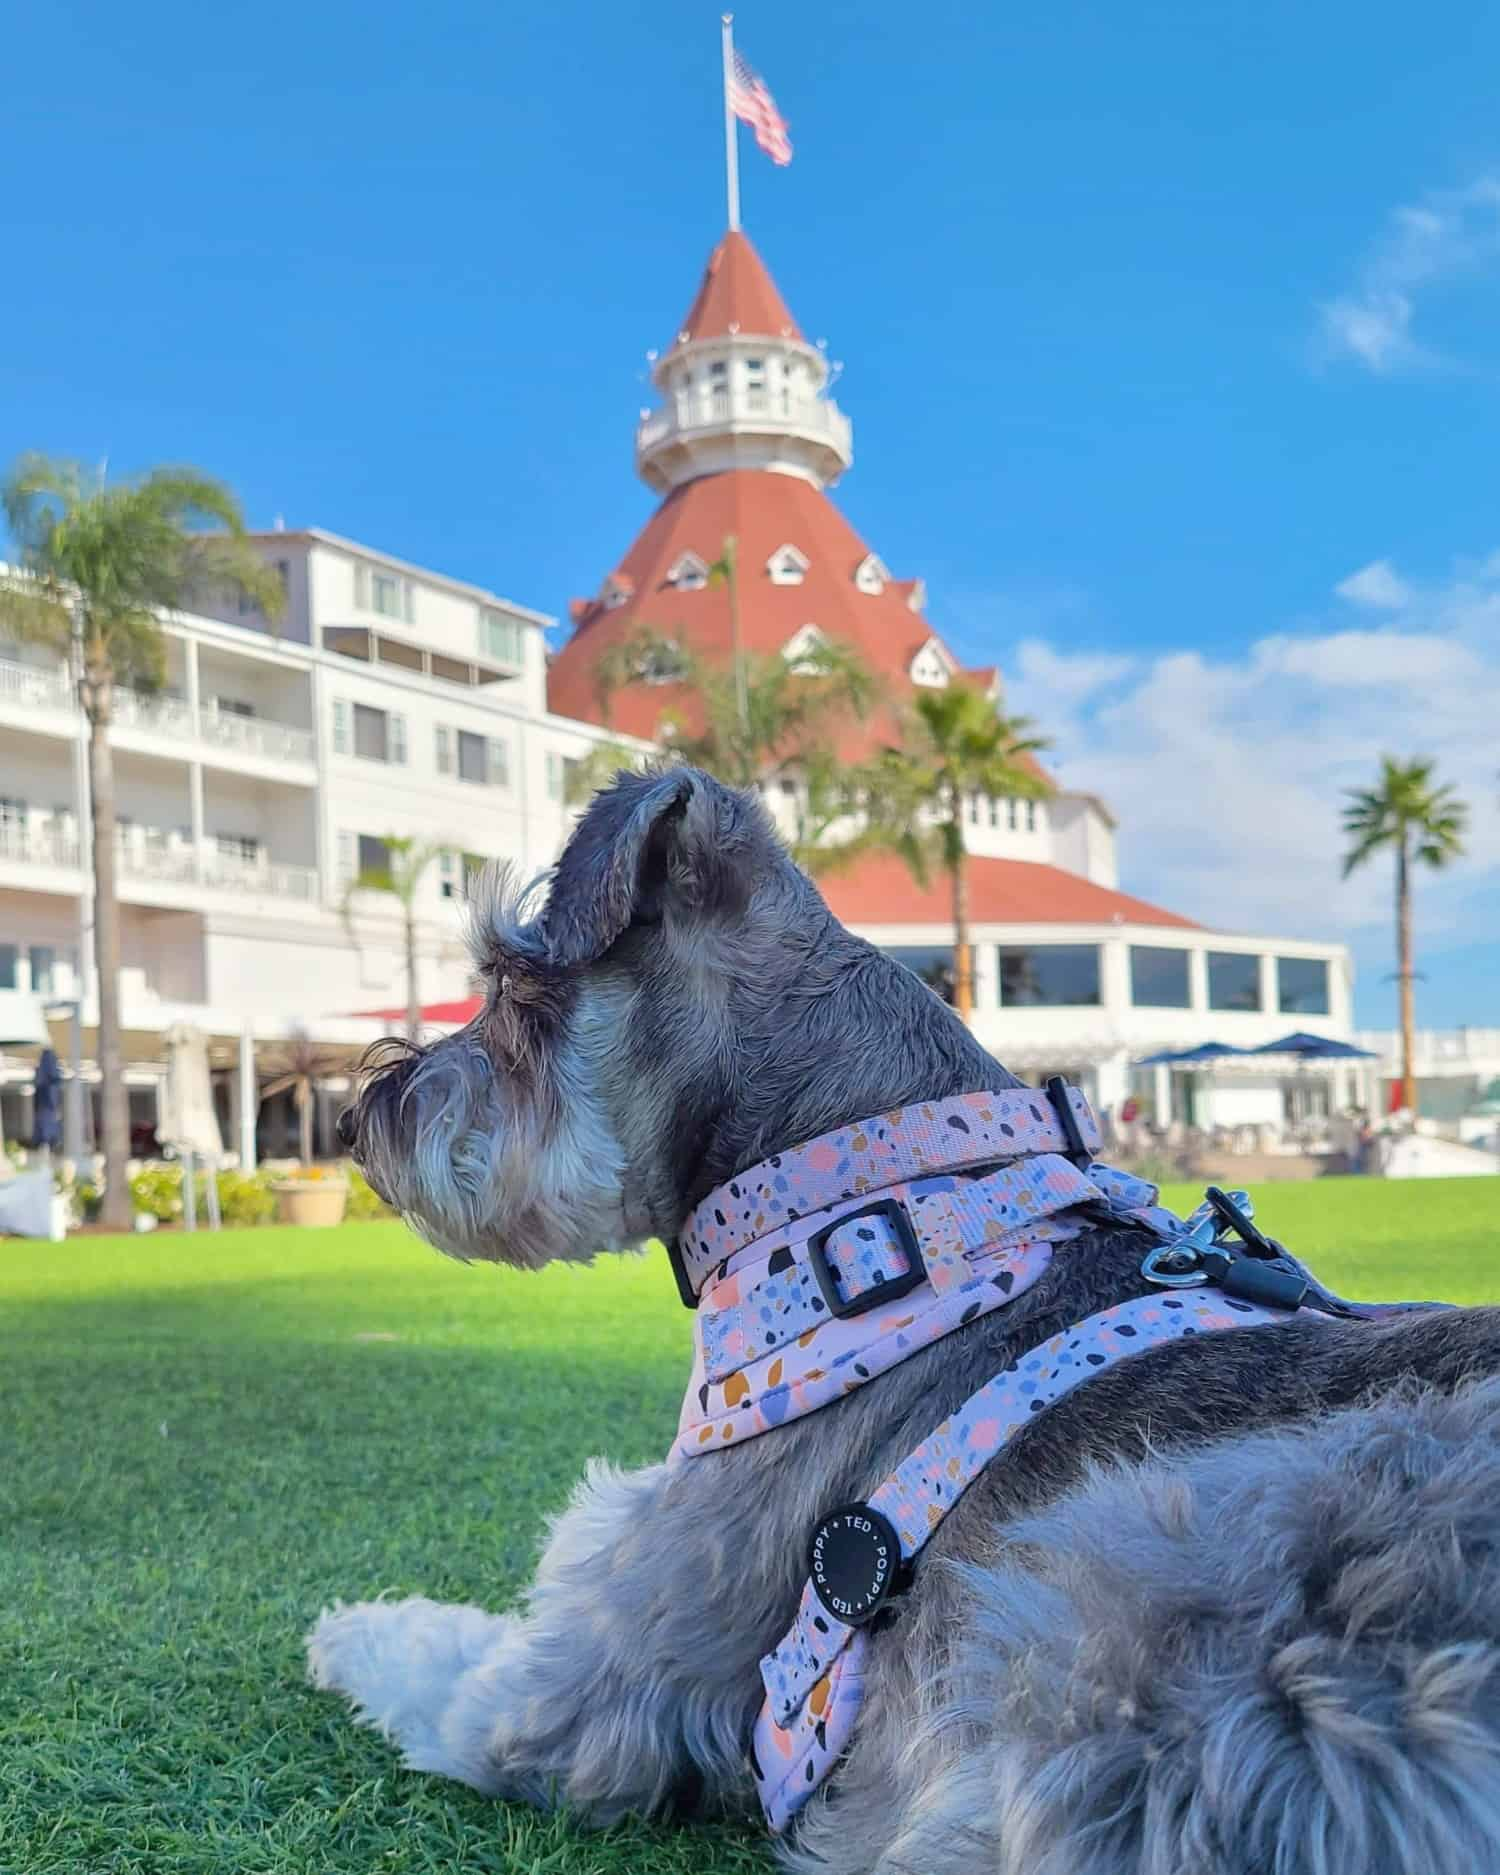 Mini Schnauzer in a pink harness lying on the grass in front of a classic hotel with a red shingle roof